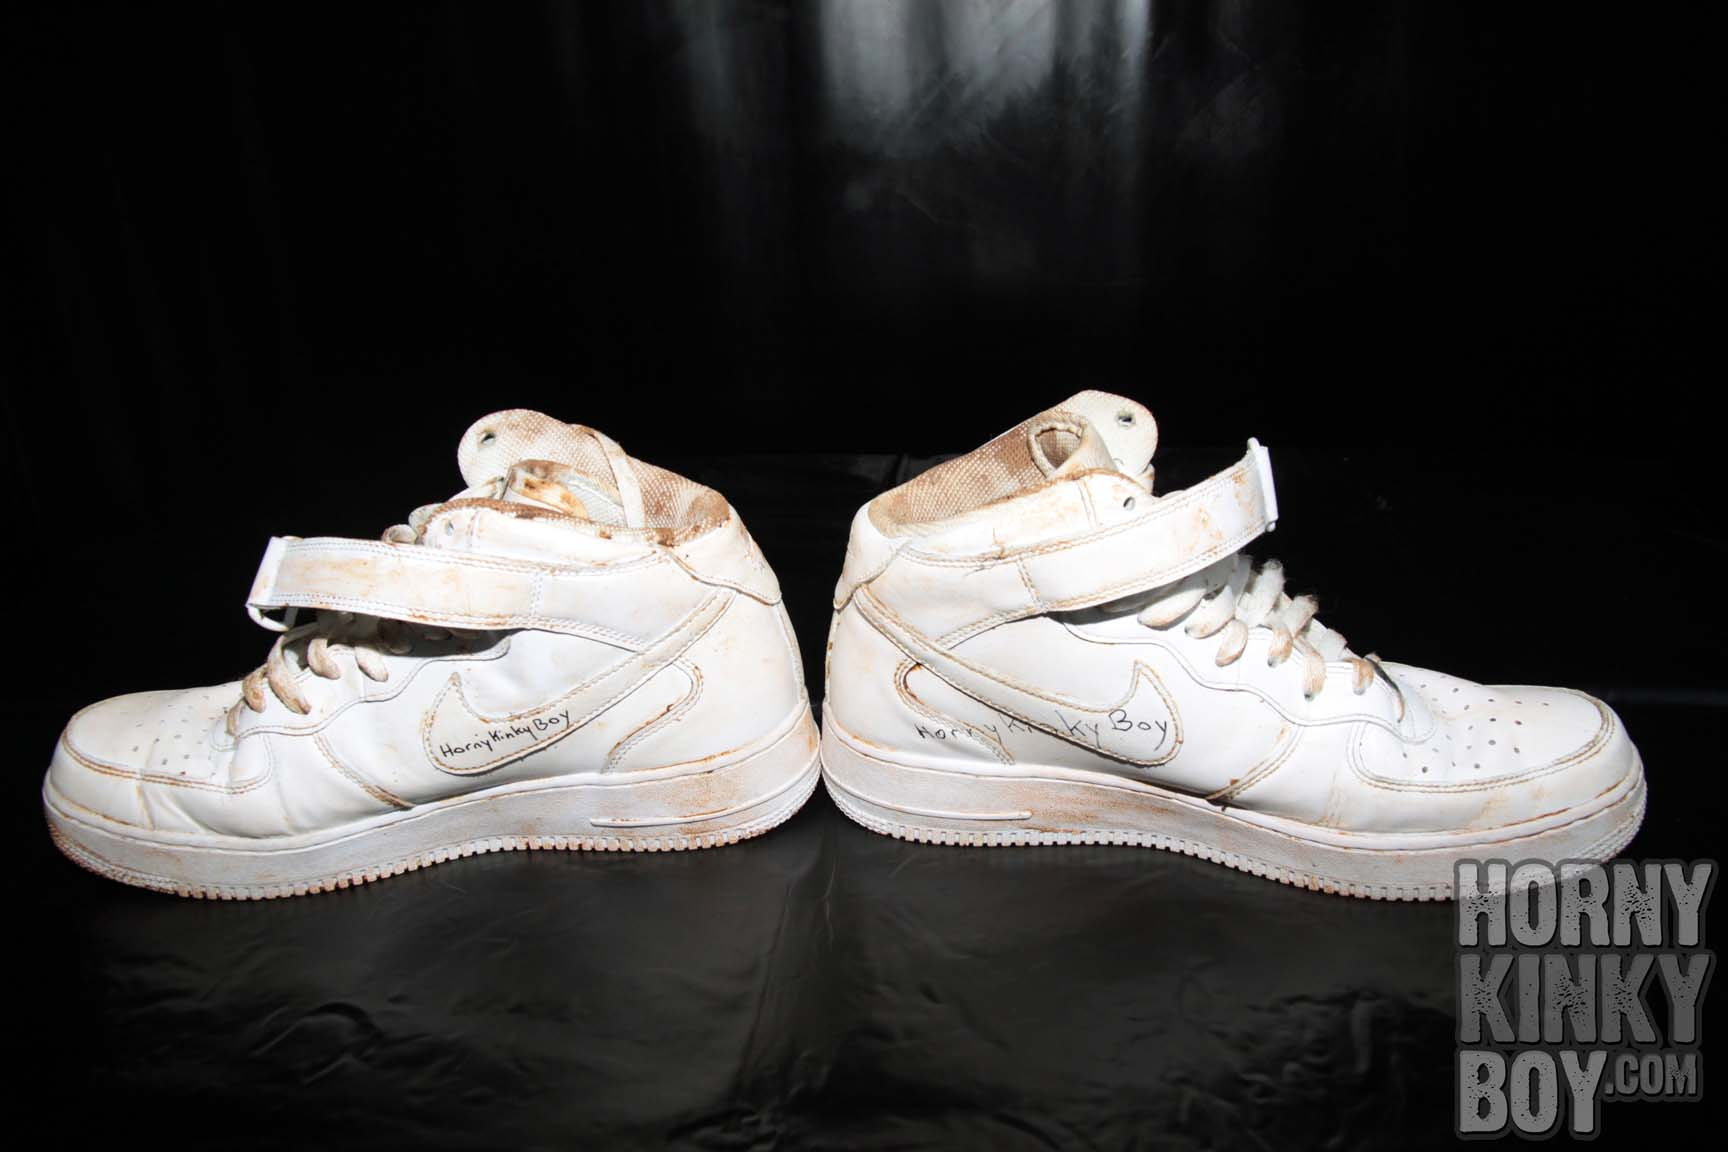 HornyKinkyBoy's Excrement Sneakers For Sale